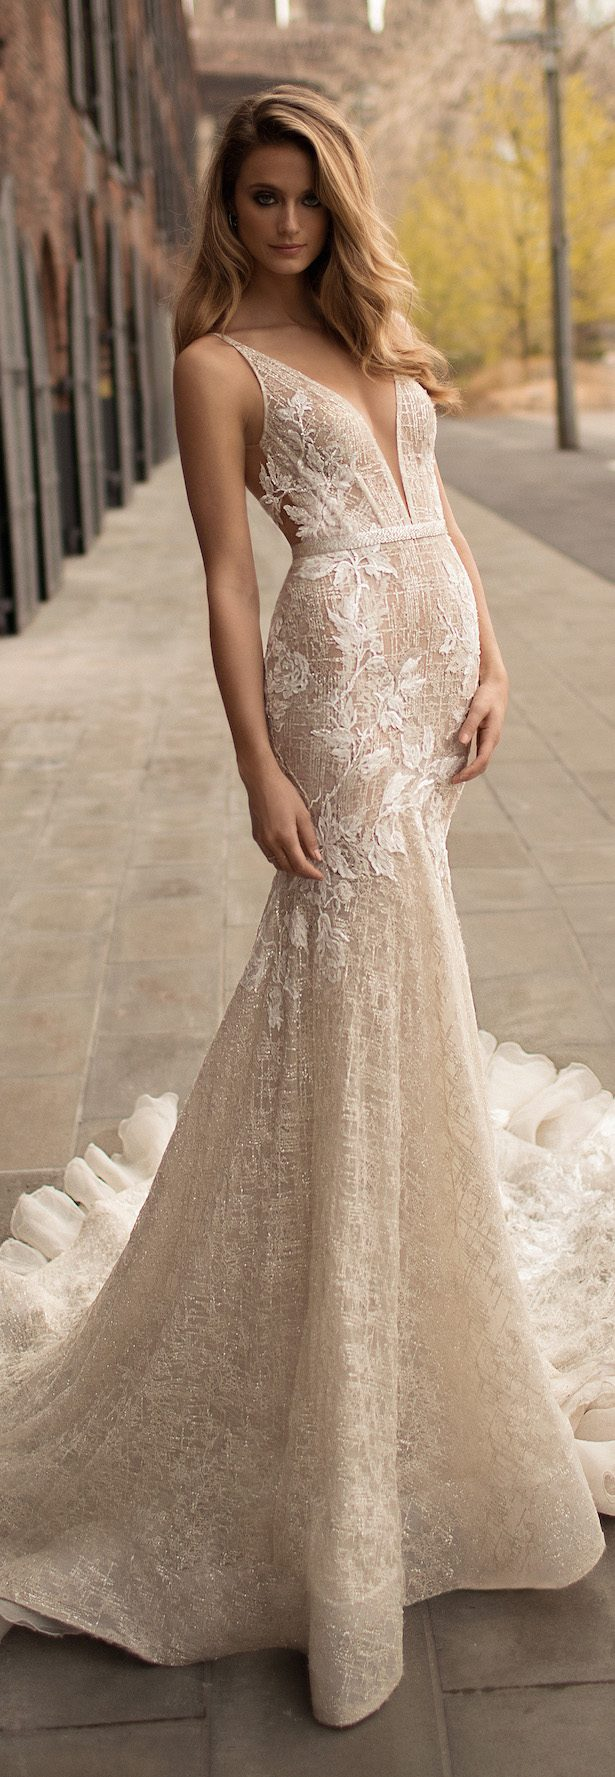 Best wedding dresses of 2017 belle the magazine best wedding dresses of 2017 berta wedding dress collection spring 2018 junglespirit Gallery